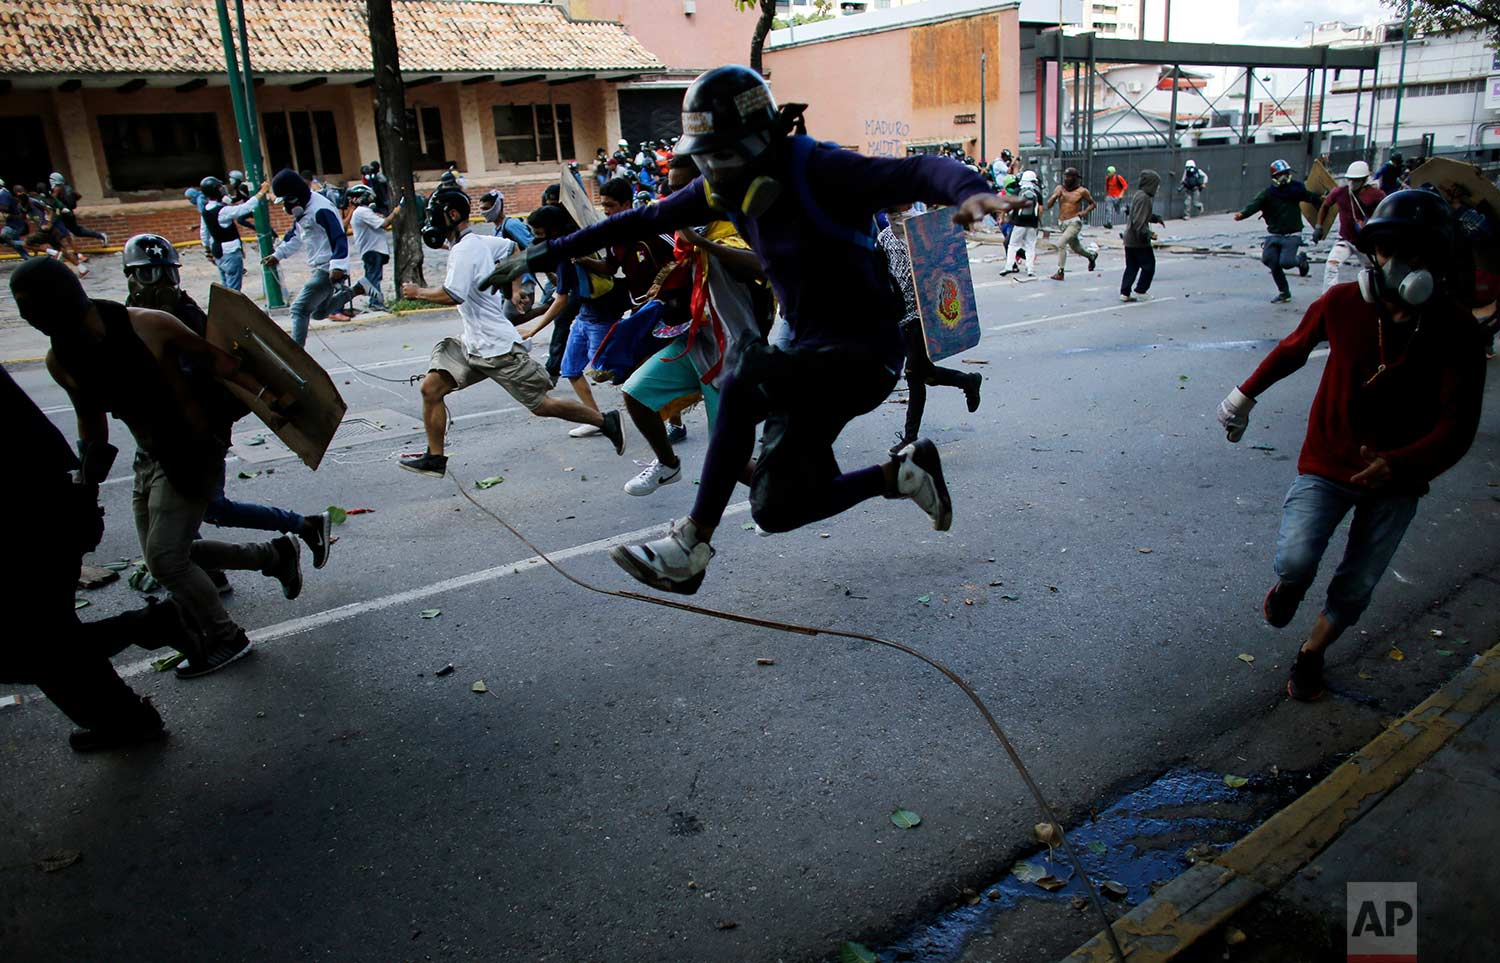 Anti-government protesters run from advancing Venezuelan Bolivarian National Guard officers on the first day of a 48-hour general strike in protest of government plans to rewrite the constitution, in Caracas, Venezuela, Wednesday, July 26, 2017. (AP Photo/Ariana Cubillos)